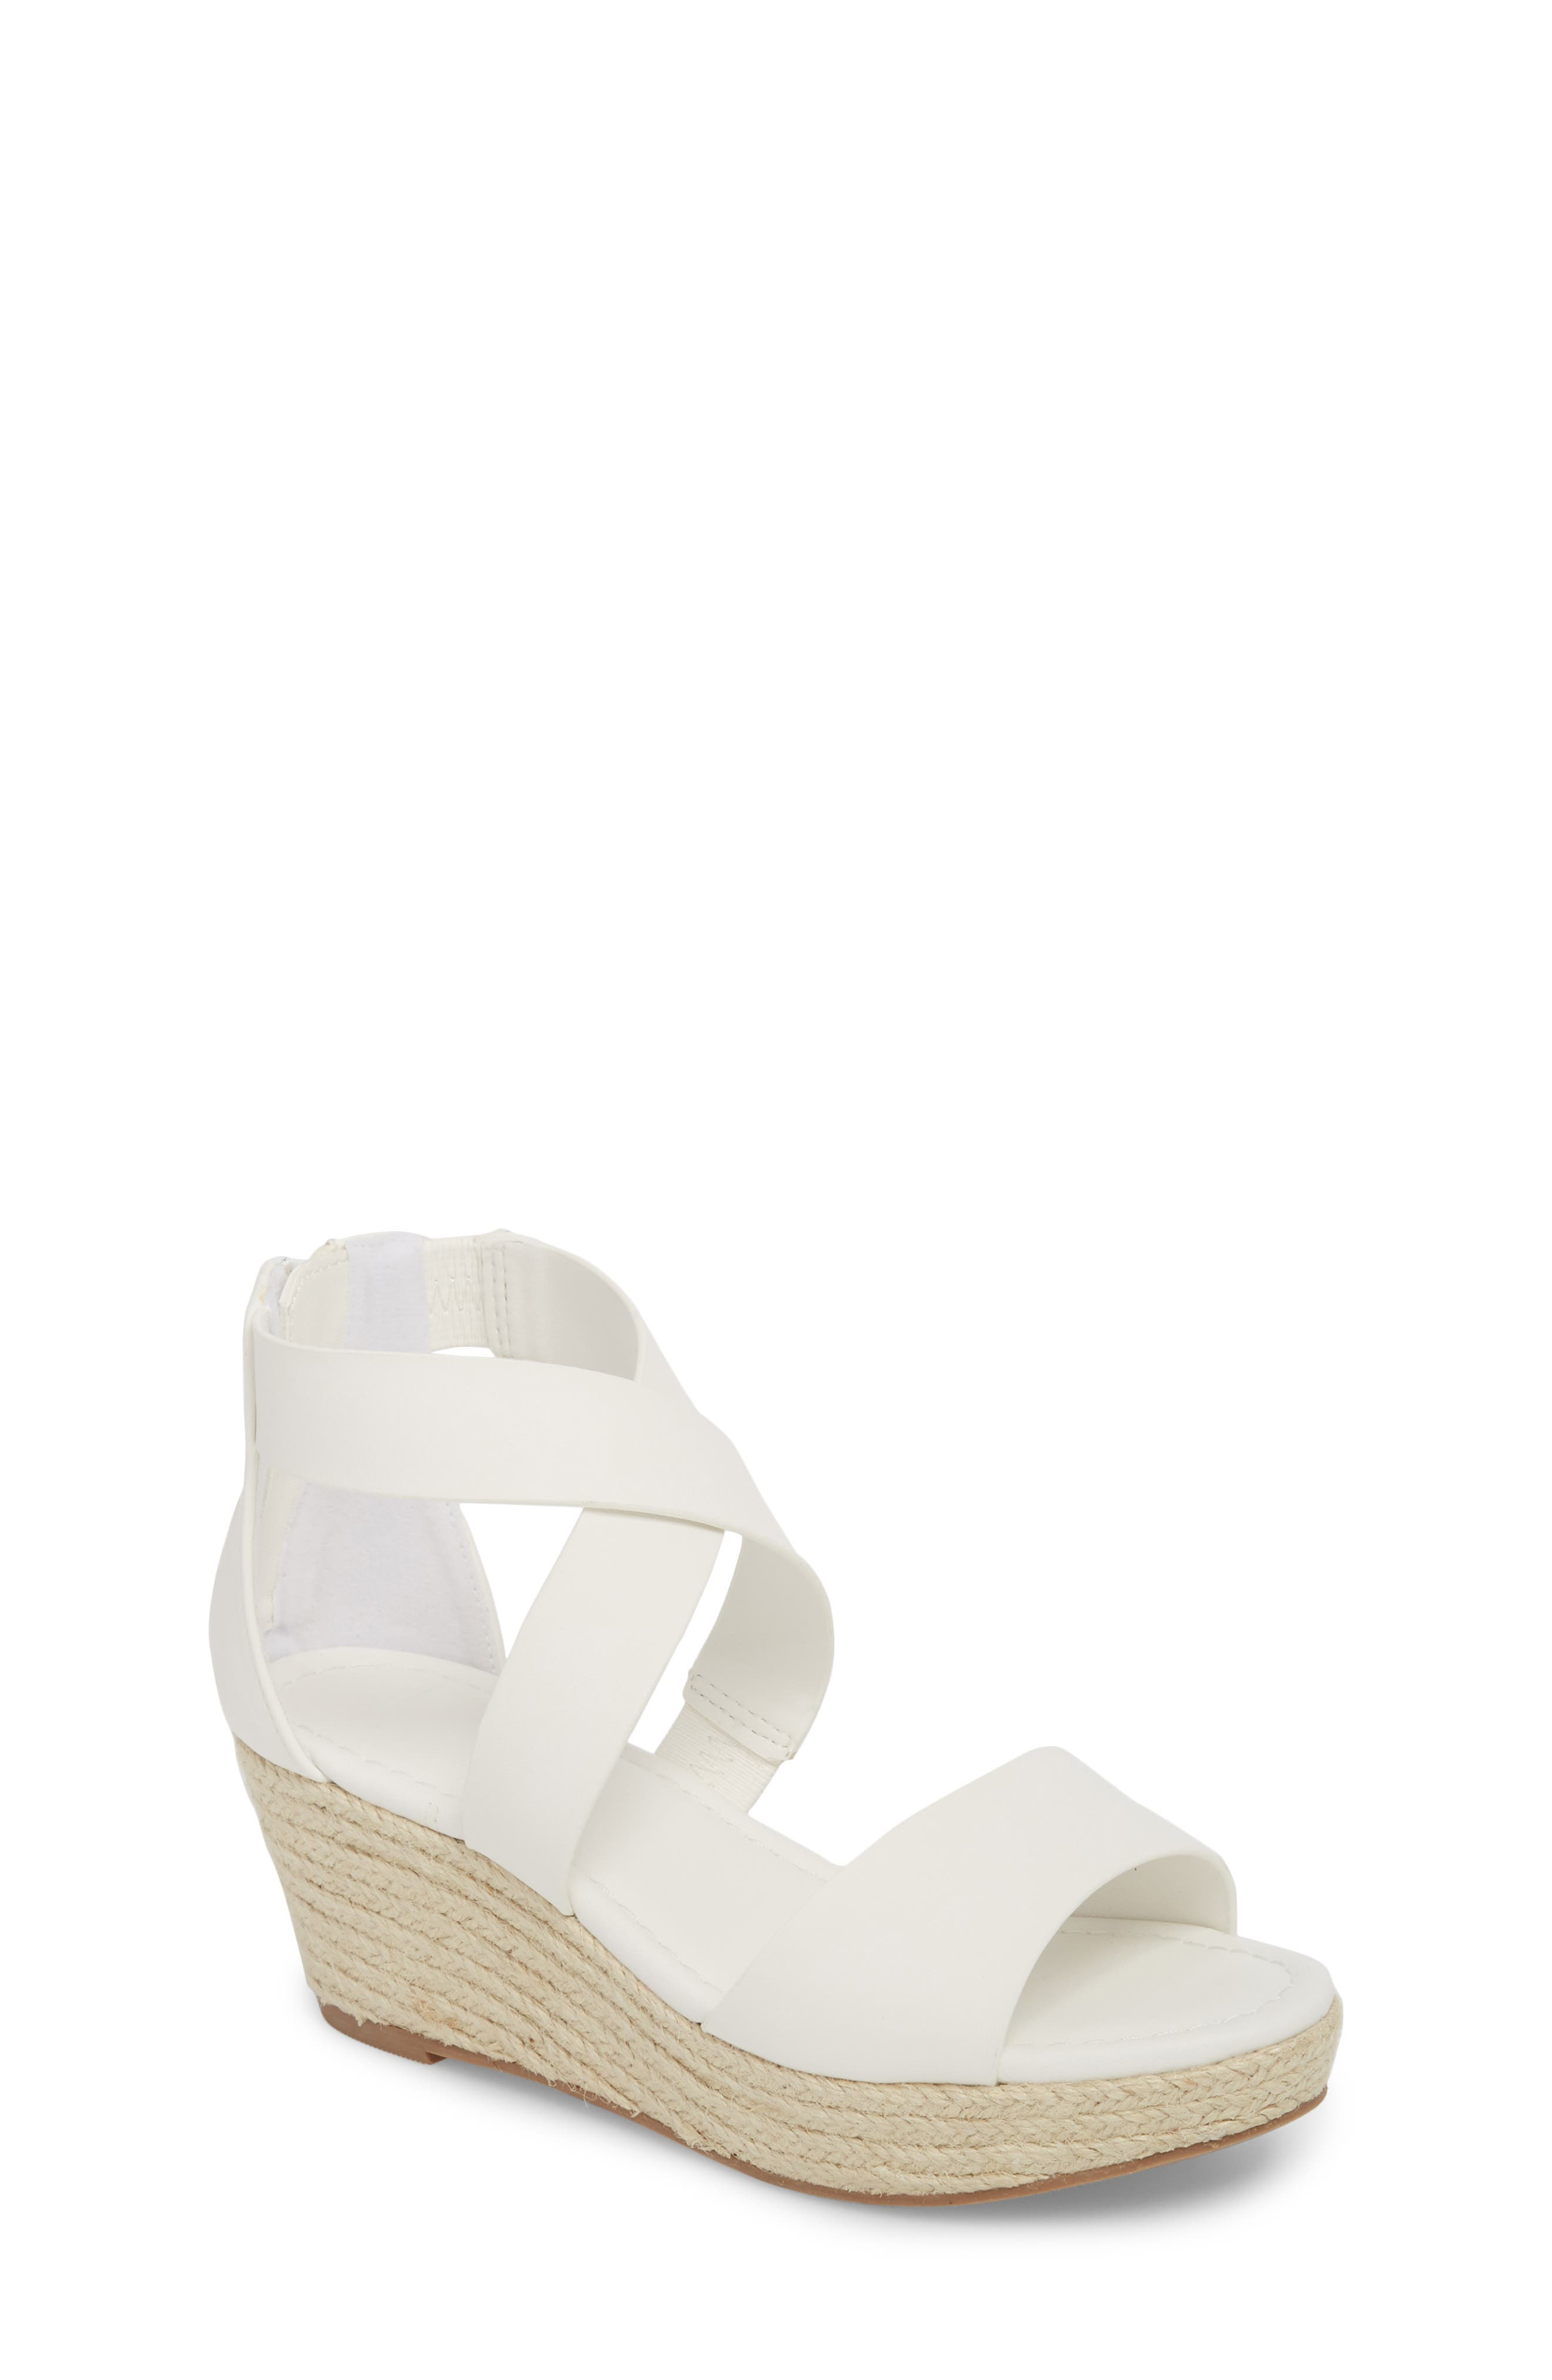 Dolce Vita Wilma Platform Wedge Sandal (Toddler, Little Kid & Big Kid)